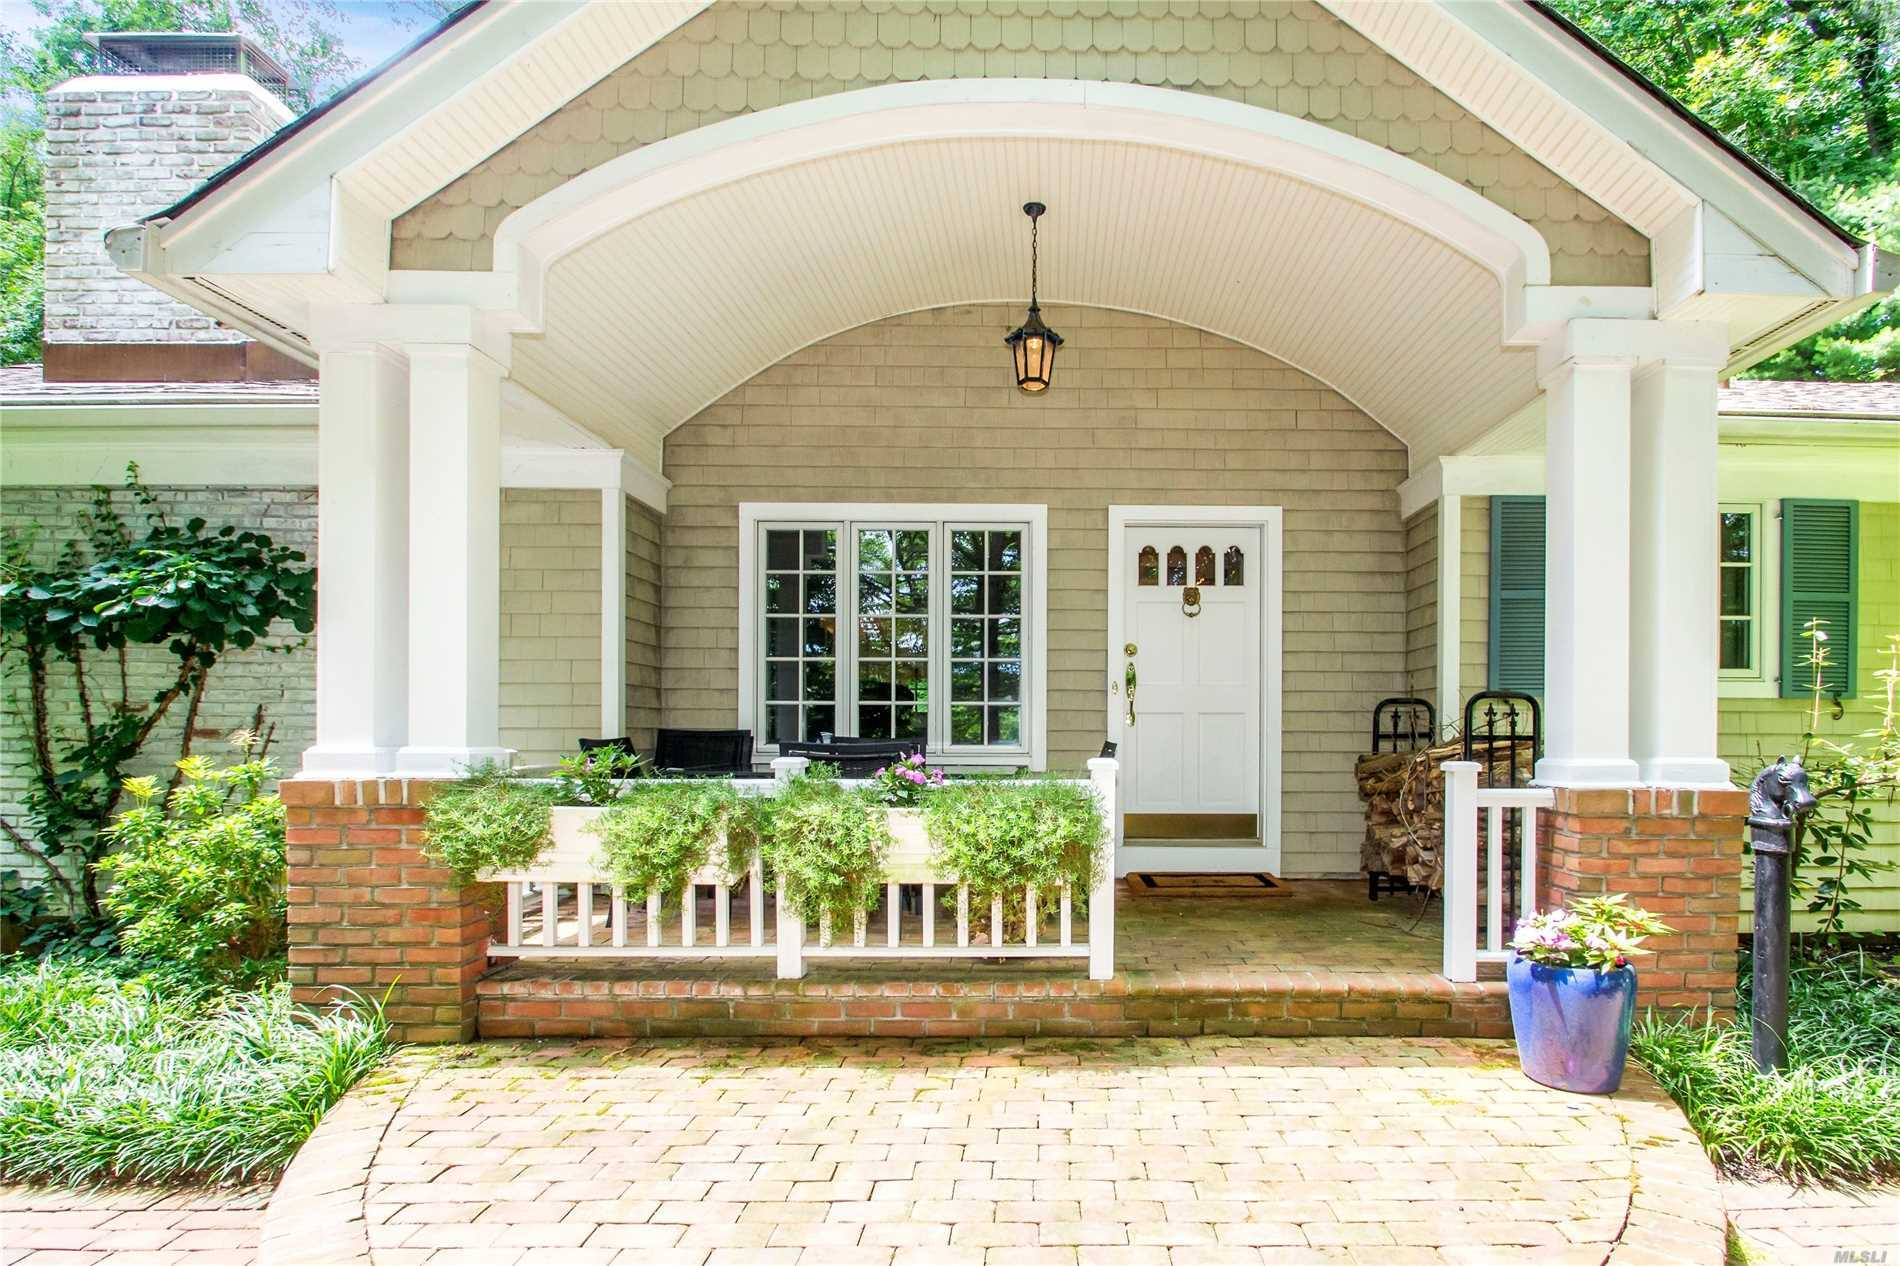 Privately Situated On 2 Acres, This Beautiful Home Features A Formal Living Room With A Cozy Fireplace, Formal Dining Room, Eik, Updated Baths, Hardwood Floors,  New Roof, And New Hwh. Gorgeous Gardens Designed By Dodds & Eder Surrounds The Nature And Serenity. Bluestone Patio W/ Hot Tub Addd To Great Entertaining Fun. A Fabulous Private Beach, Mooring Rights & Ramp Add To The Adventure Of Living In Cove Neck.